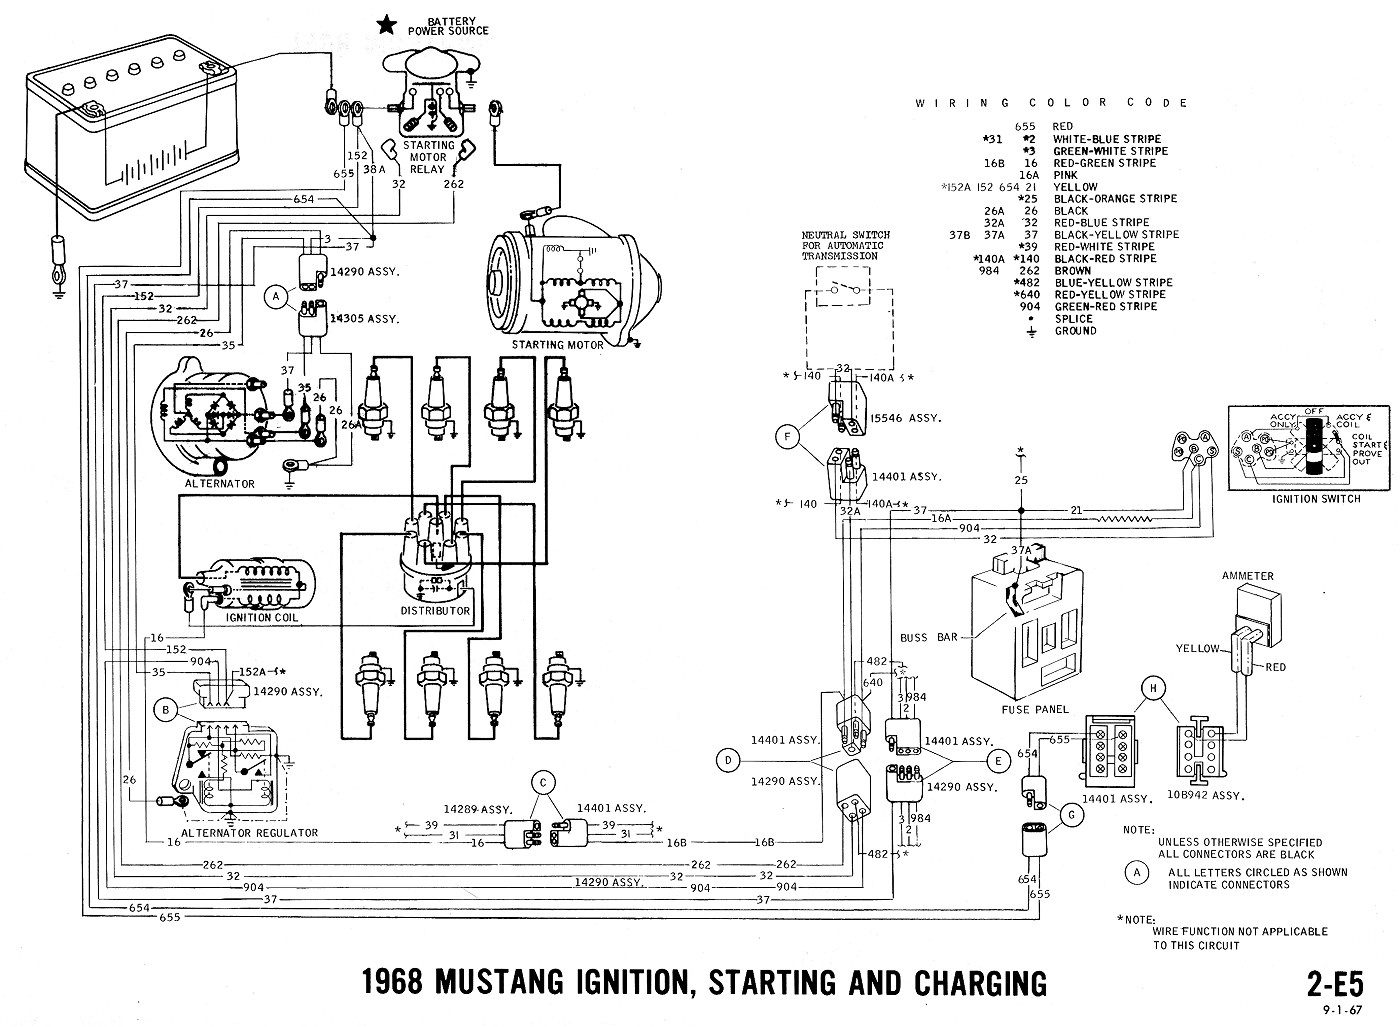 1968 Gm Wiper Switch Wiring Diagram Mustang Diagrams Evolving Software Charging Starting